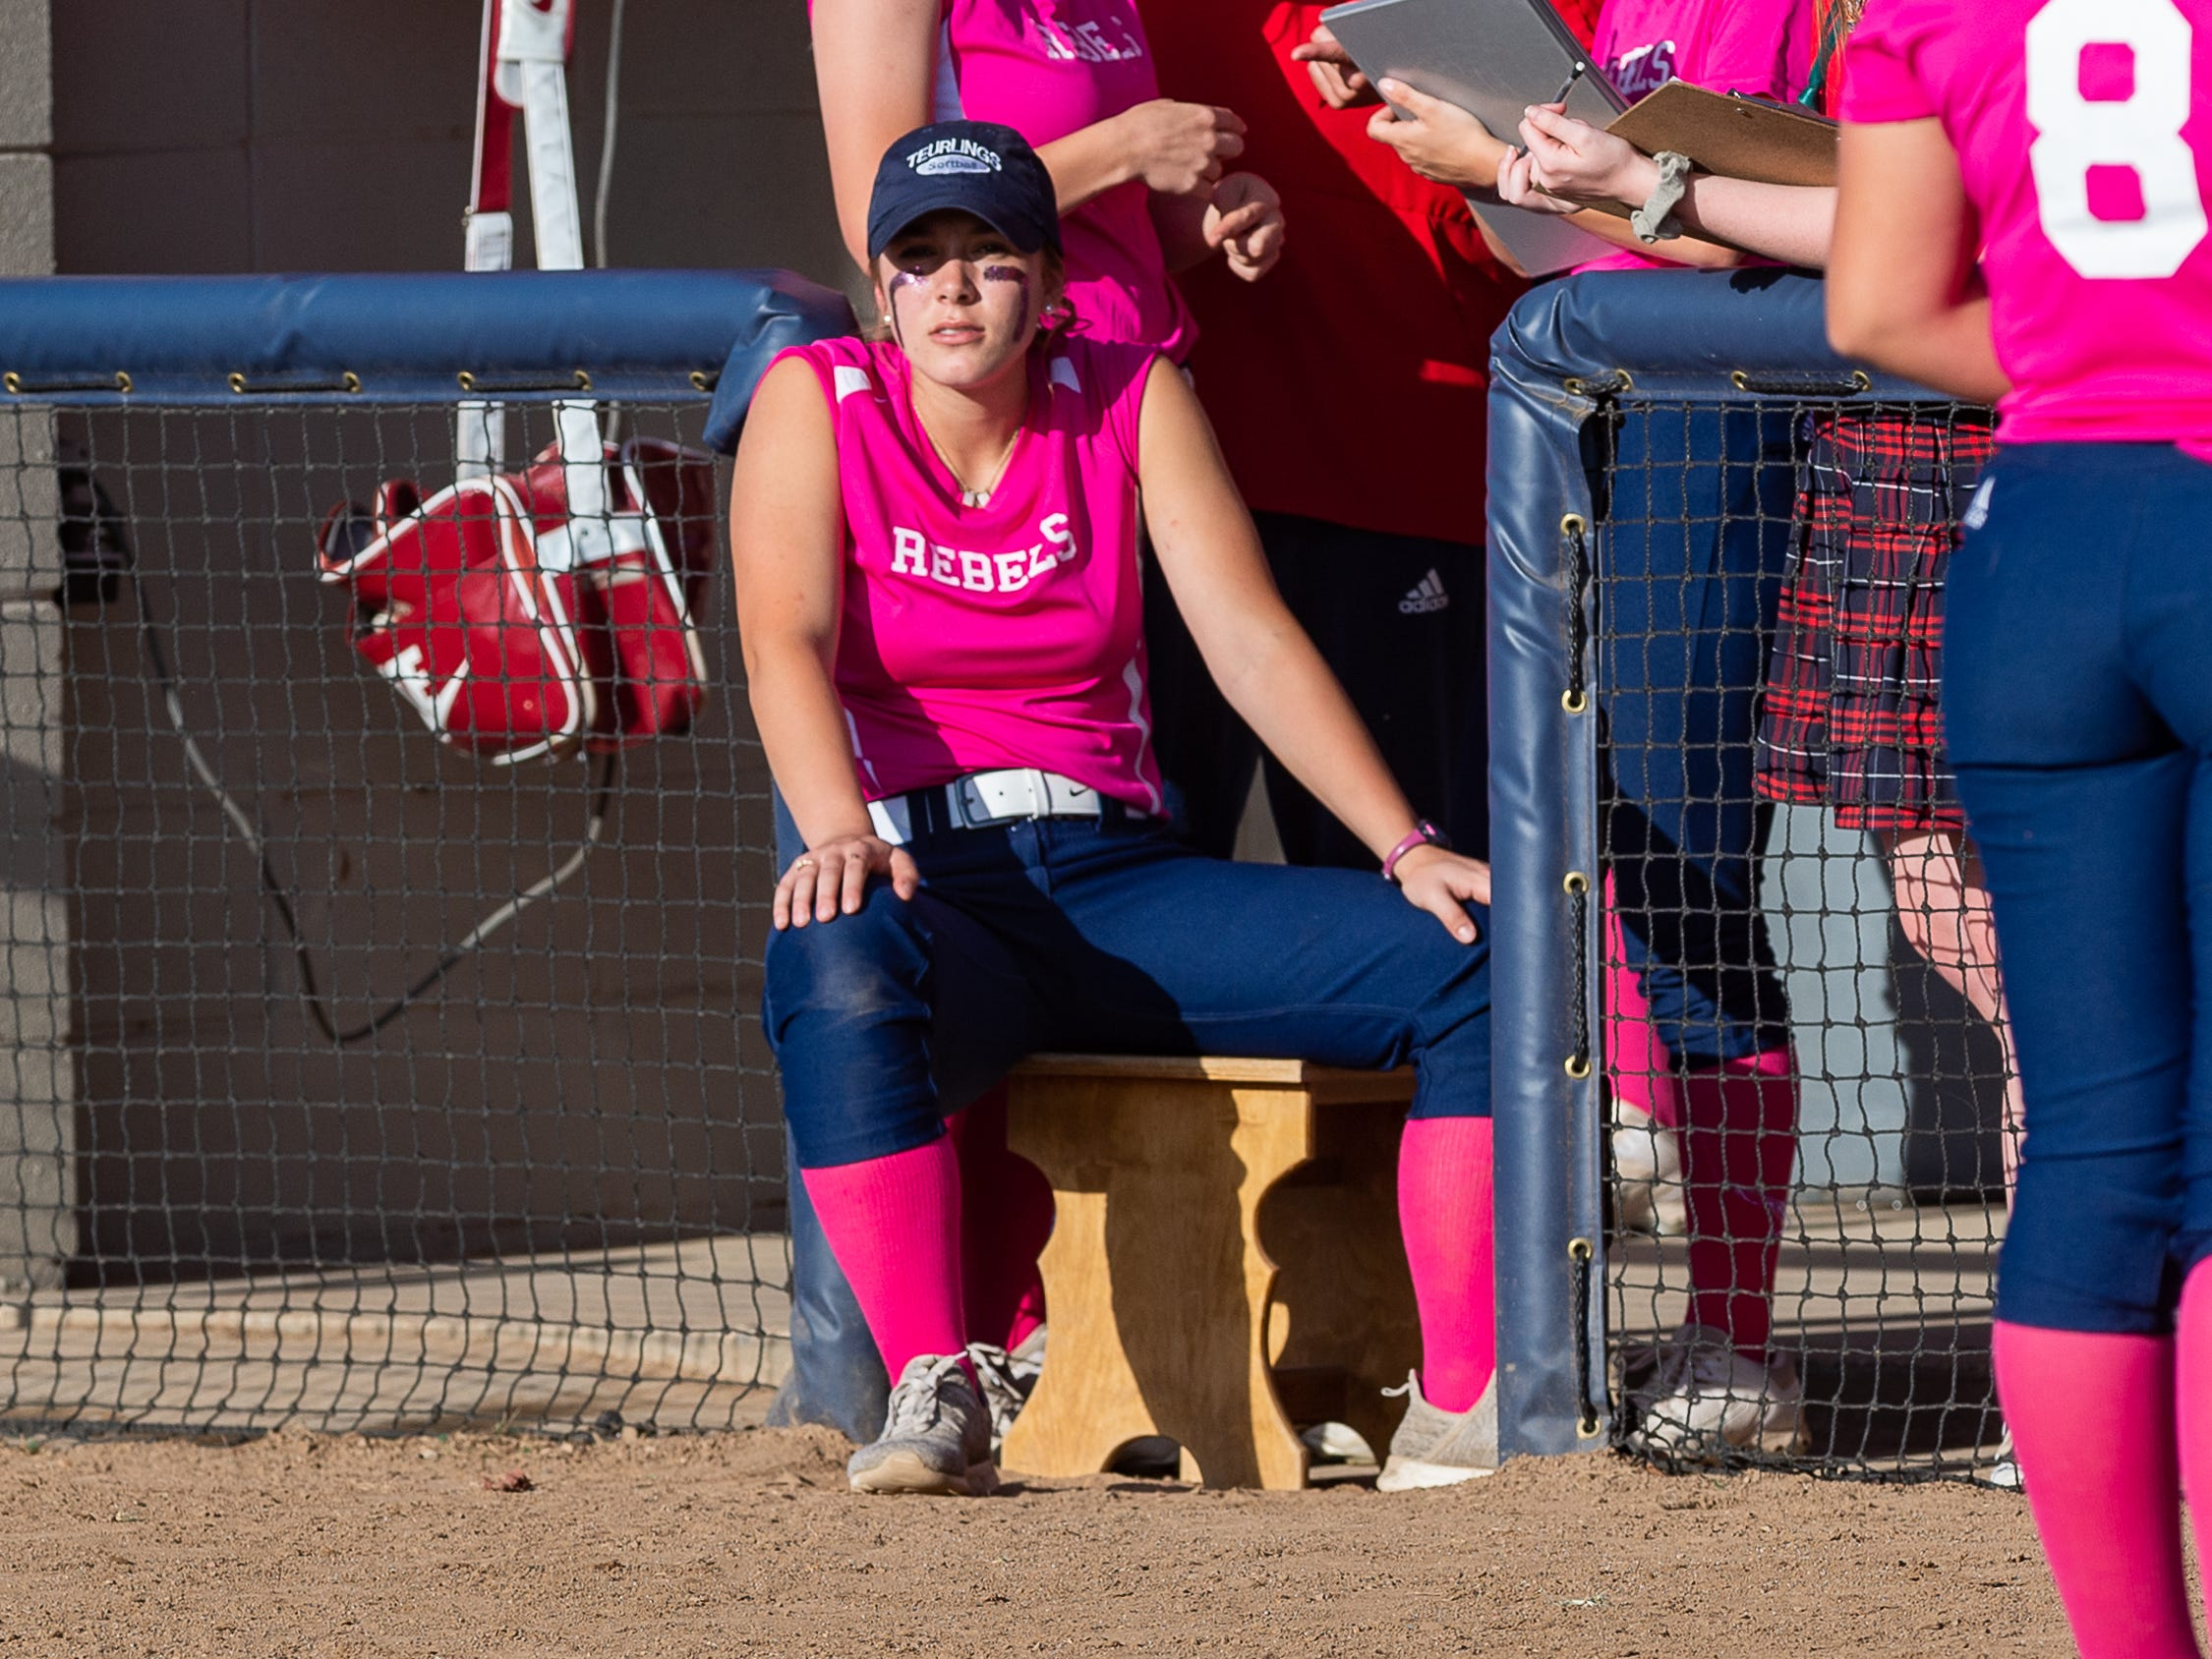 Emily Hebert in the dugout as Teurlings Catholic host St Thomas More Softball. Tuesday, April 2, 2019.